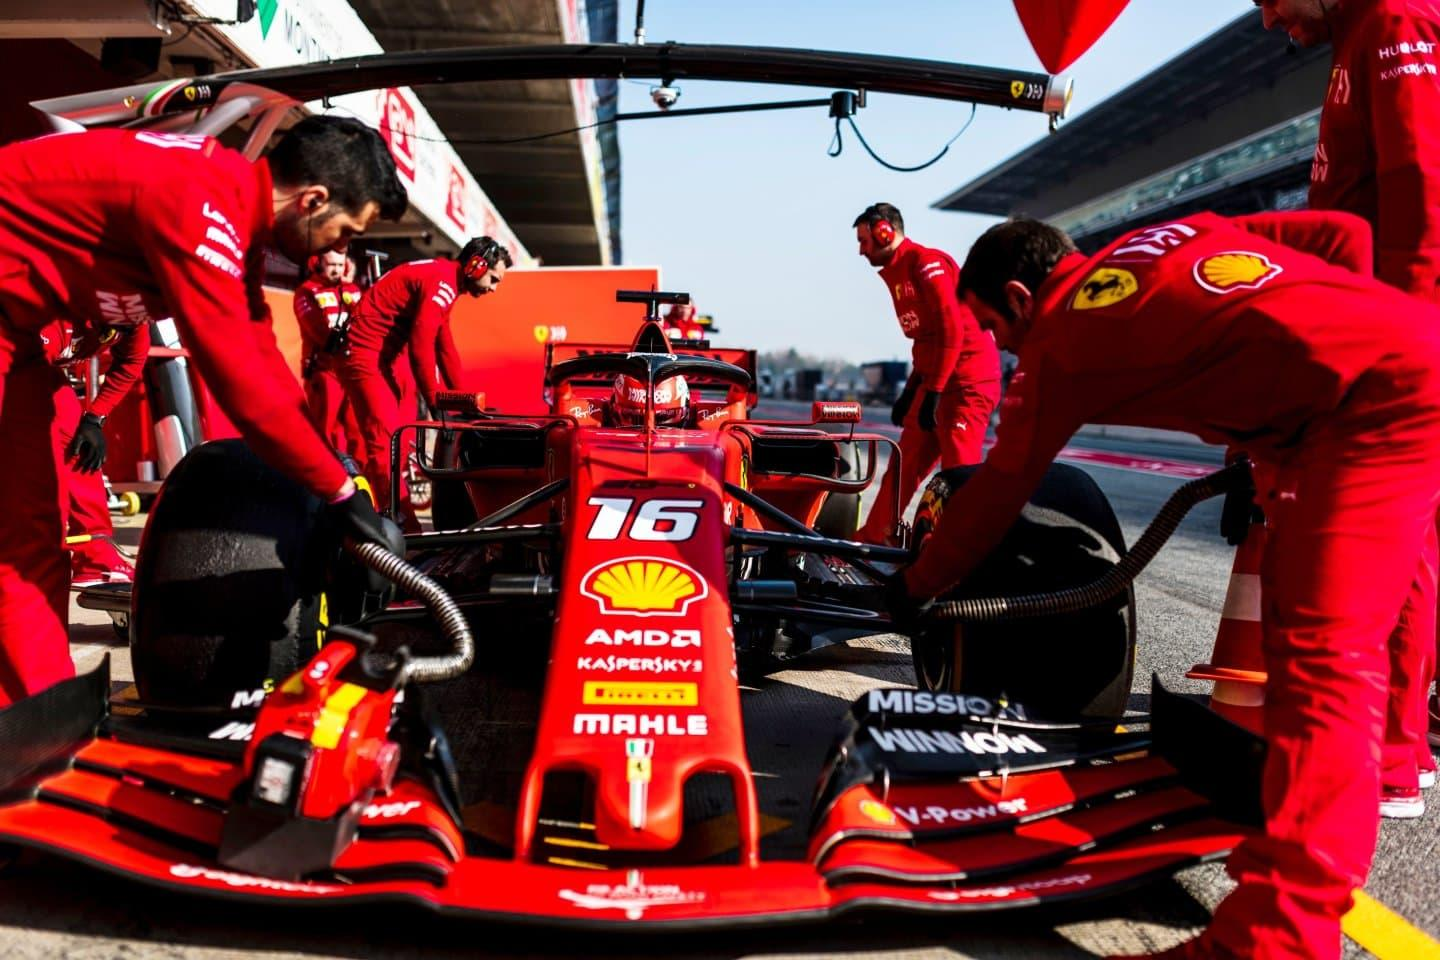 2019analisissemana1pretemporadaferrari